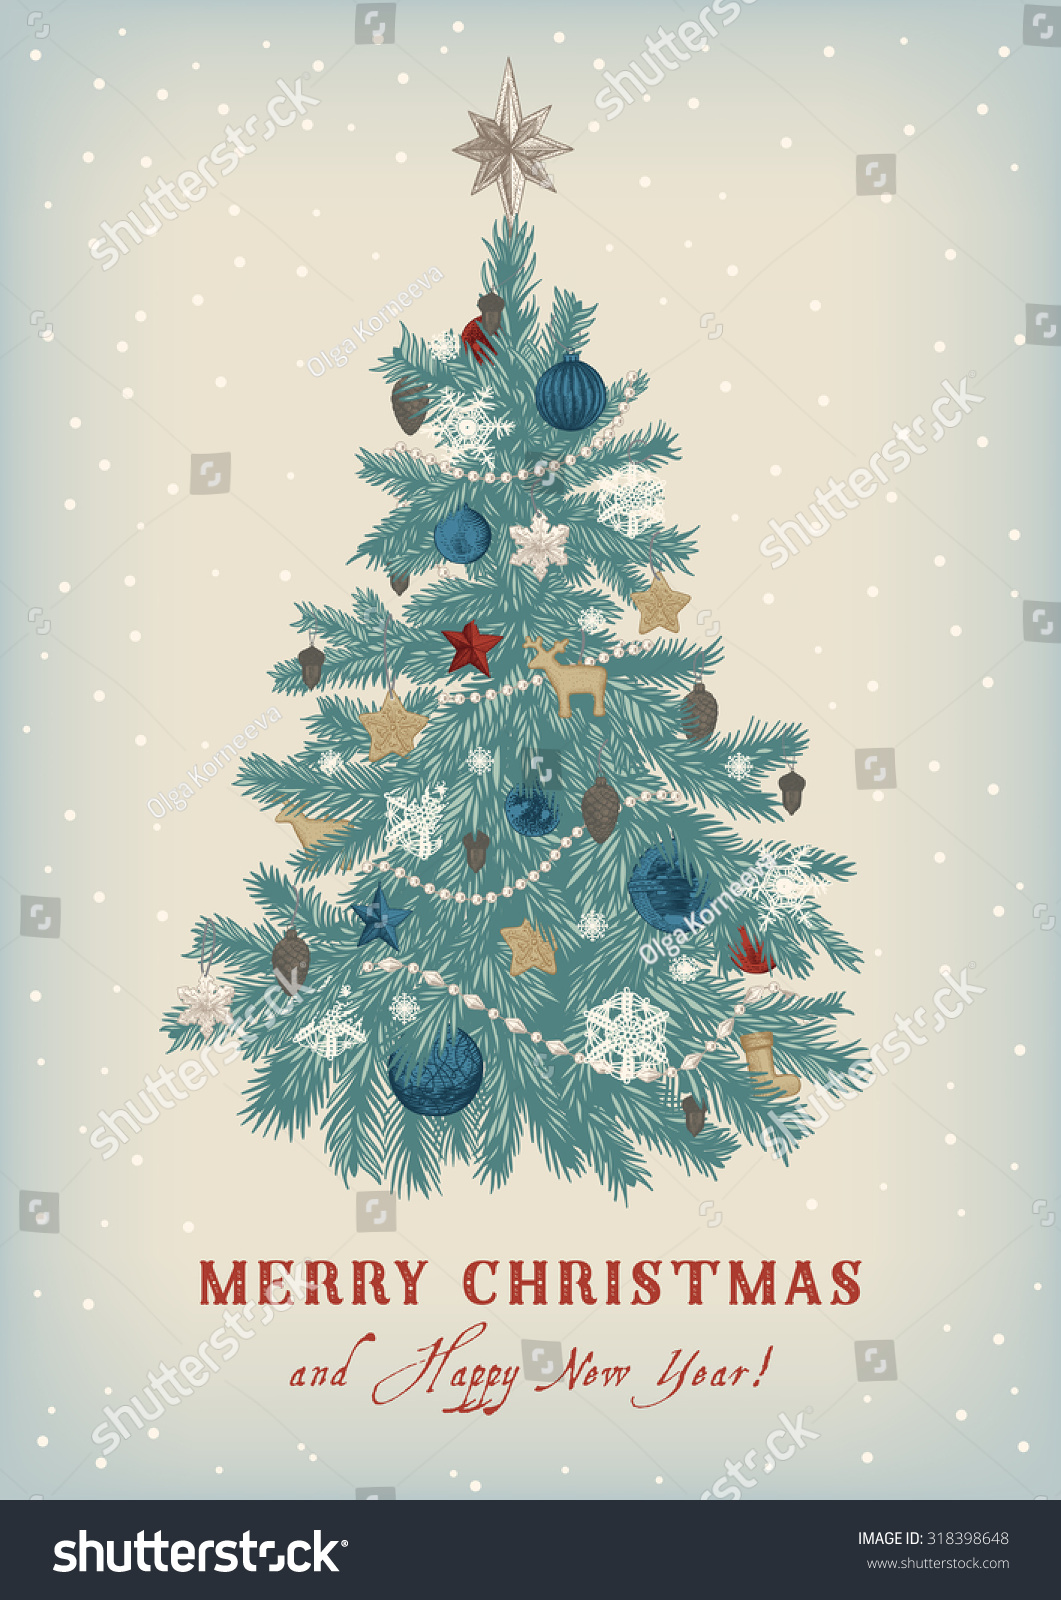 Christmas Tree Vector Vintage Illustration Merry Stock Vector Royalty Free 318398648